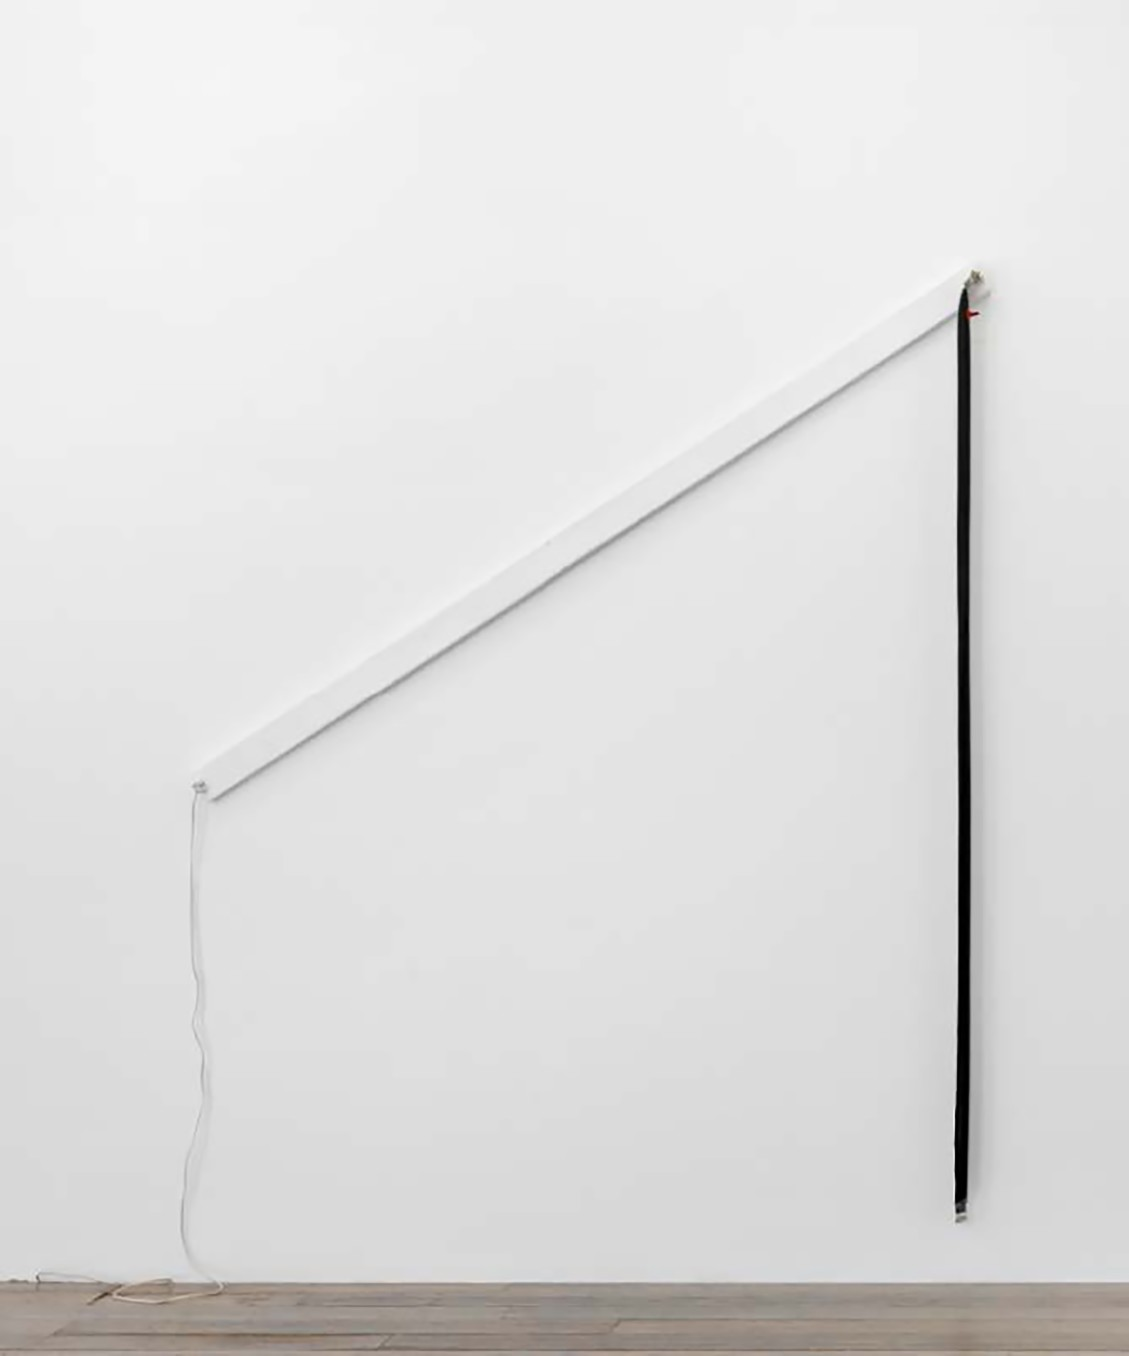 IAIN BAXTER&, Blown Out Flavin, 1965, Inflated vinyl, lighting hardware, and painted wood, 252.7 x 180.3 x 12.7 cm, 99 1/2 x 71 x 5 in